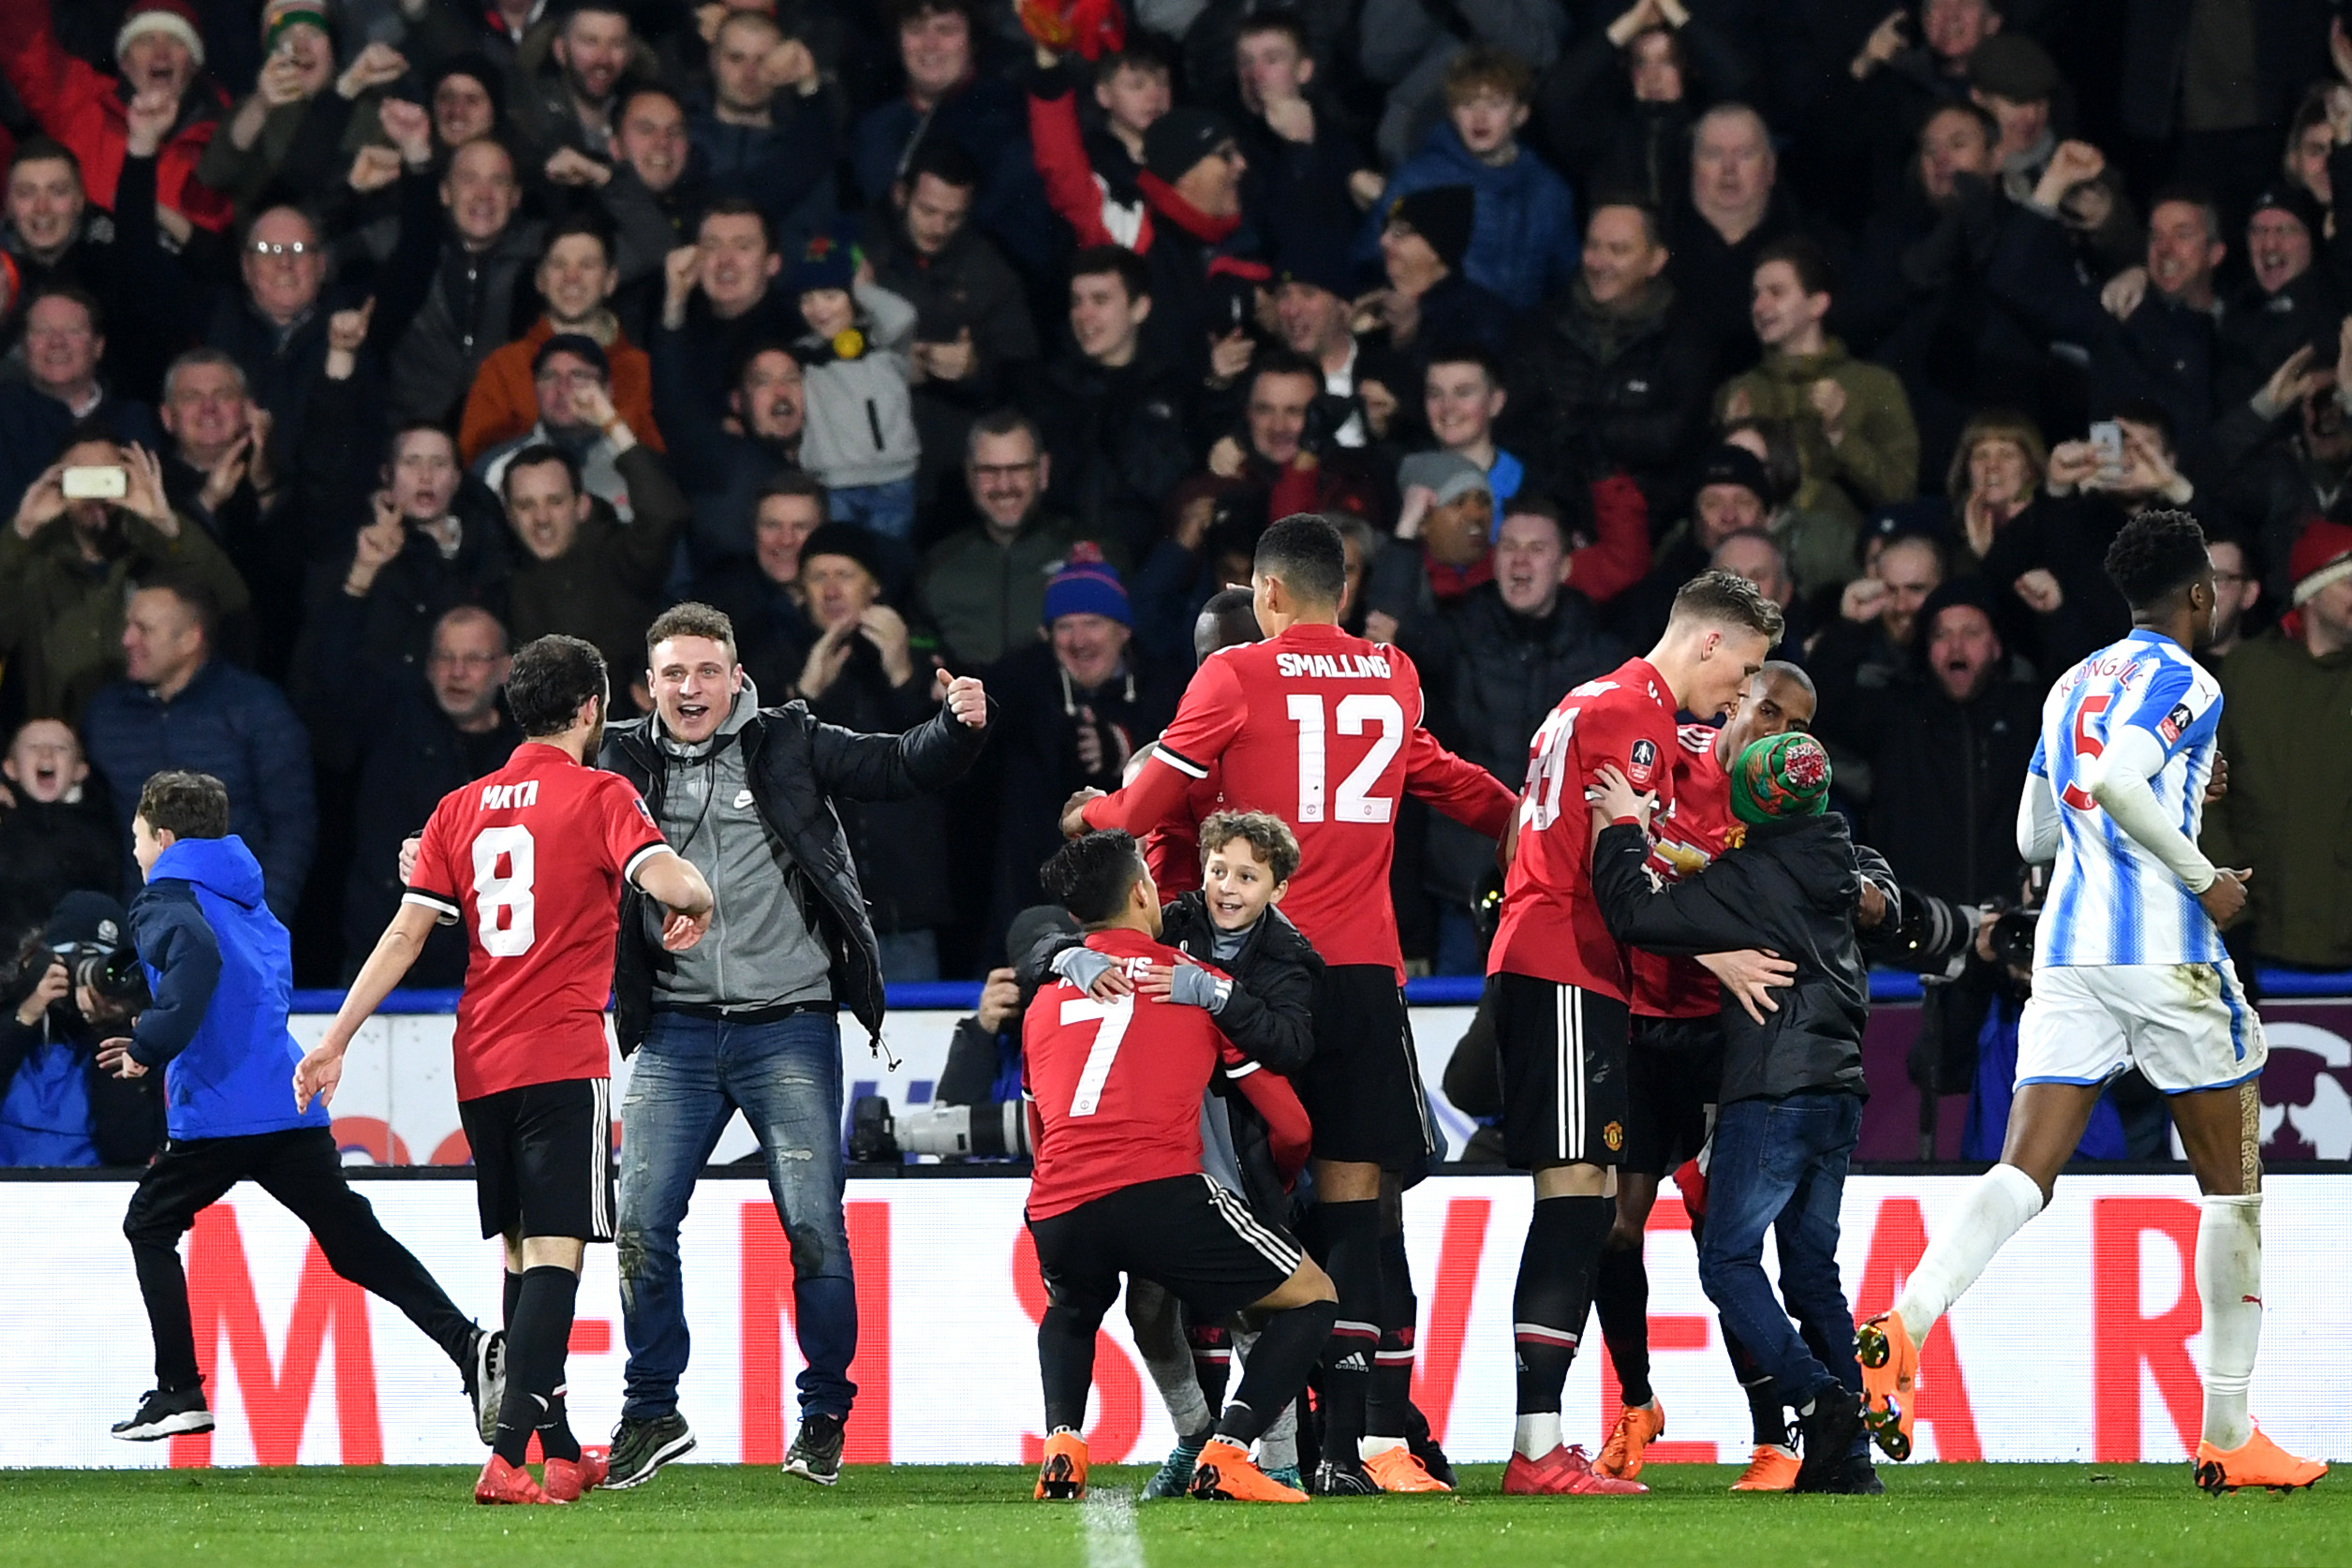 Manchester United fans cautiously optimistic after Chris Smalling's performance vs Huddersfield